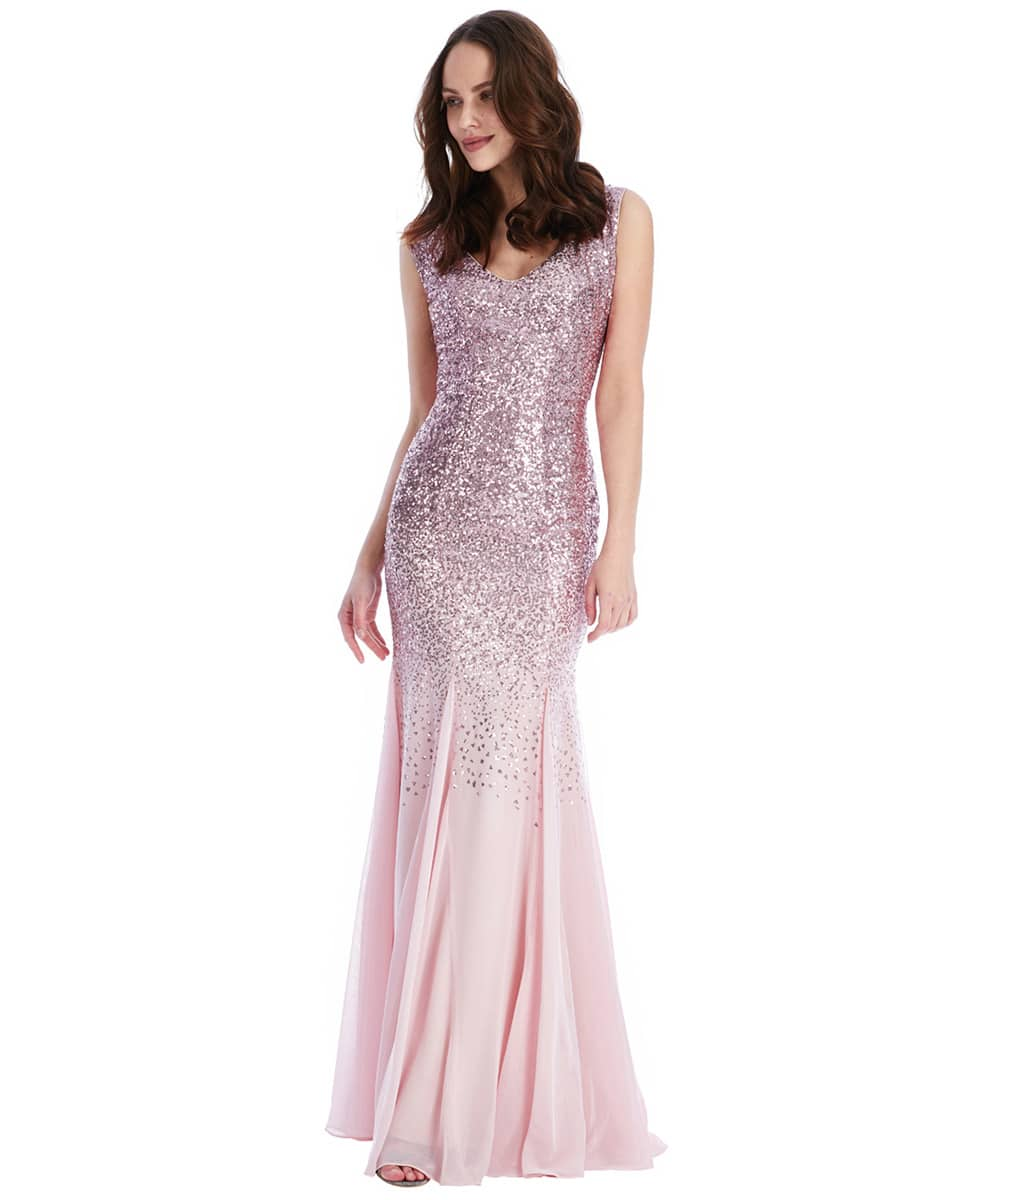 Alila-Rose-sequin-debs-dress-city-goddess